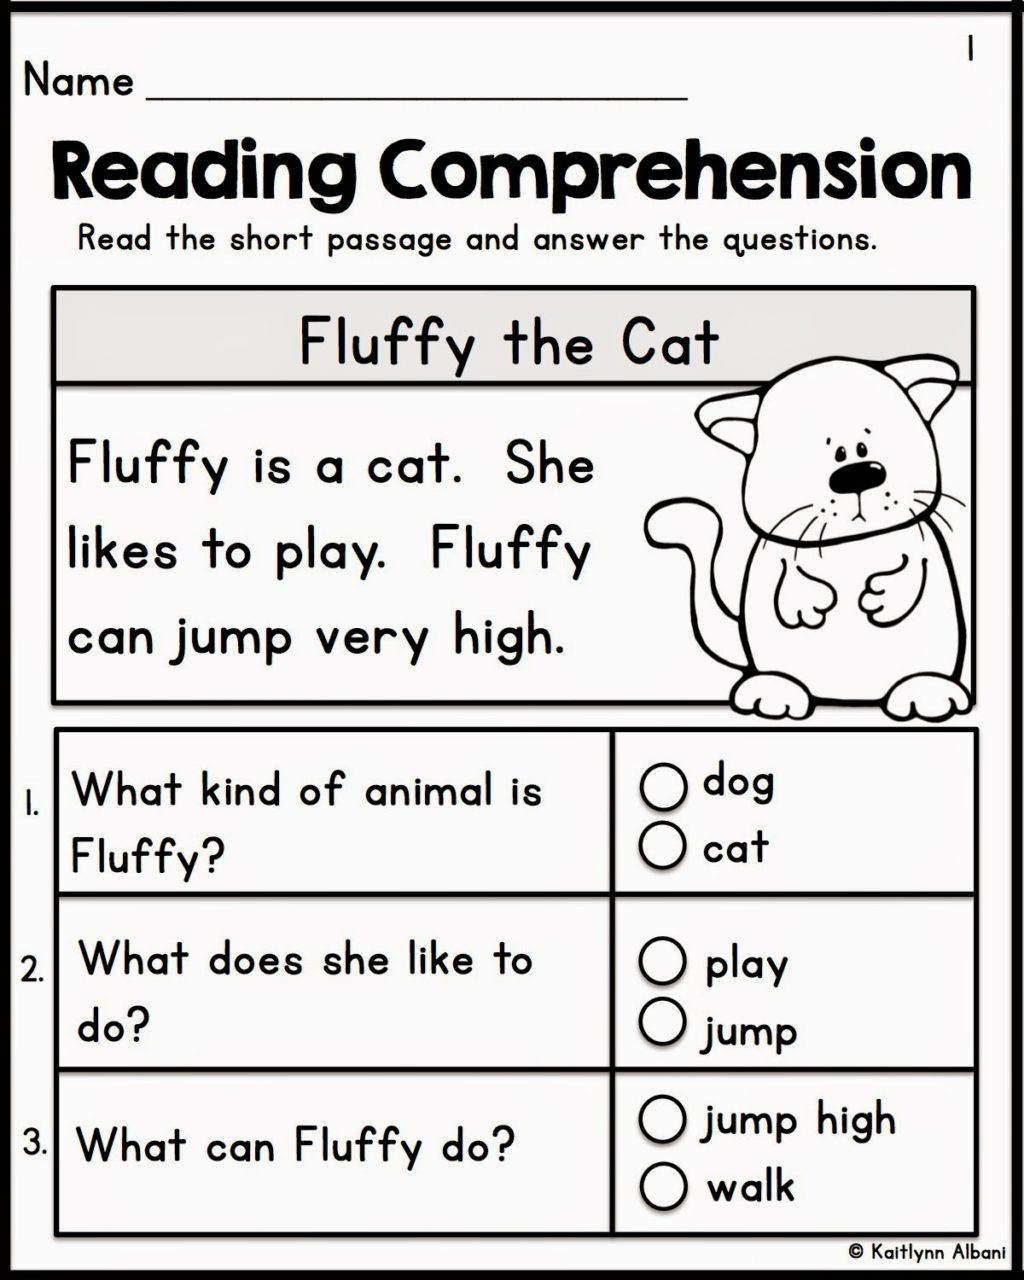 Seventh Grade Reading Comprehension Worksheets Worksheet Seventh Grade Reading Prehensionrksheet